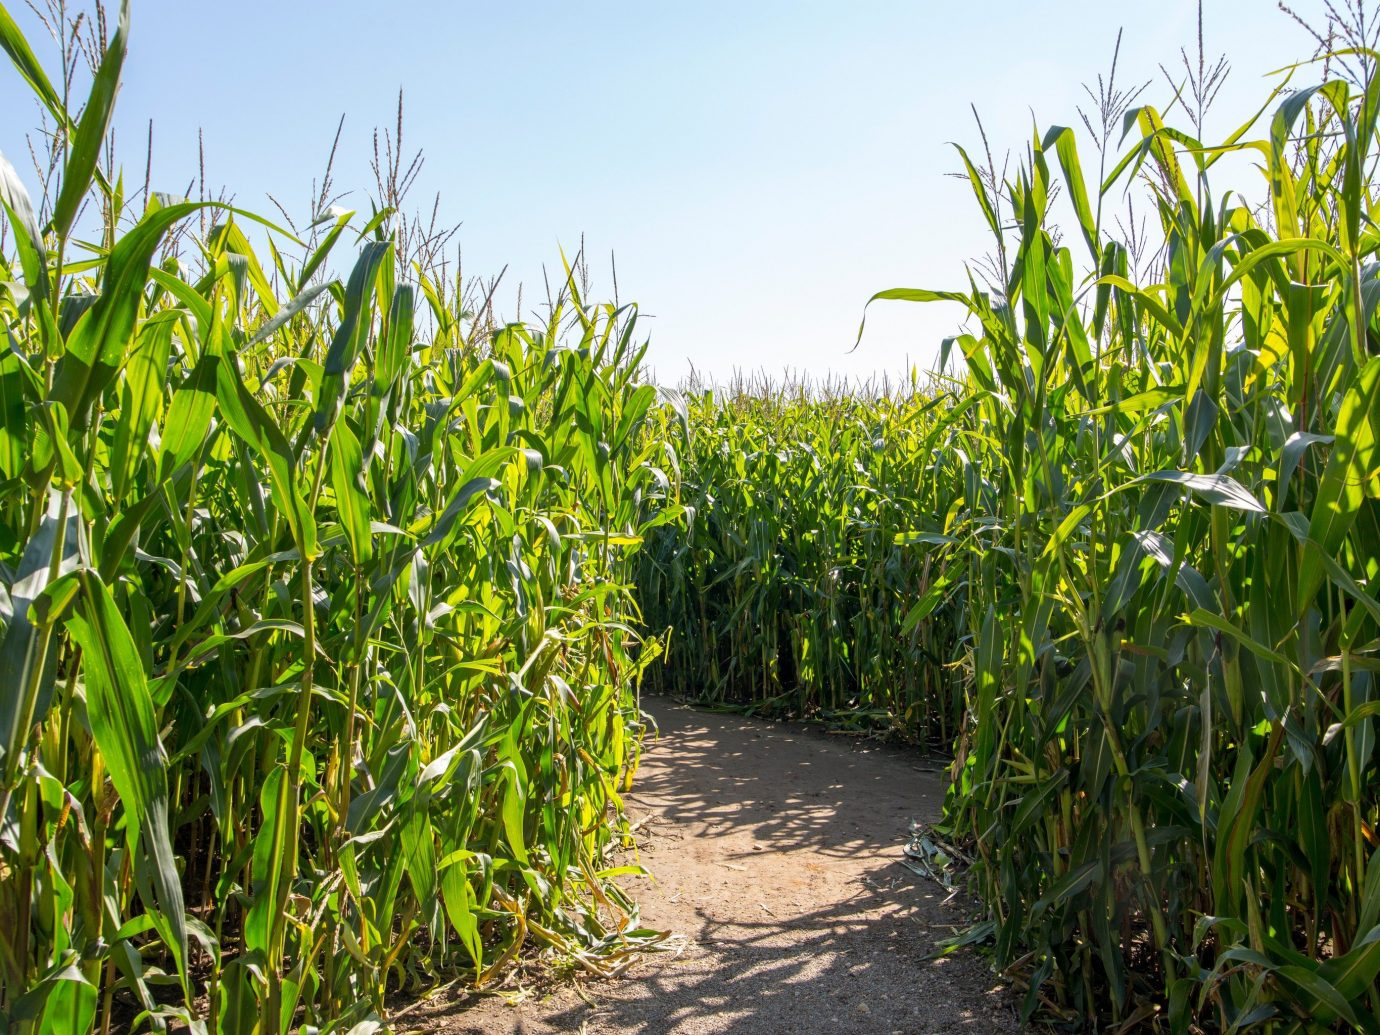 Trip Ideas outdoor tree sky agriculture plant crop field food maize grass family plantation palm grass produce commodity food grain bushes surrounded lined corn